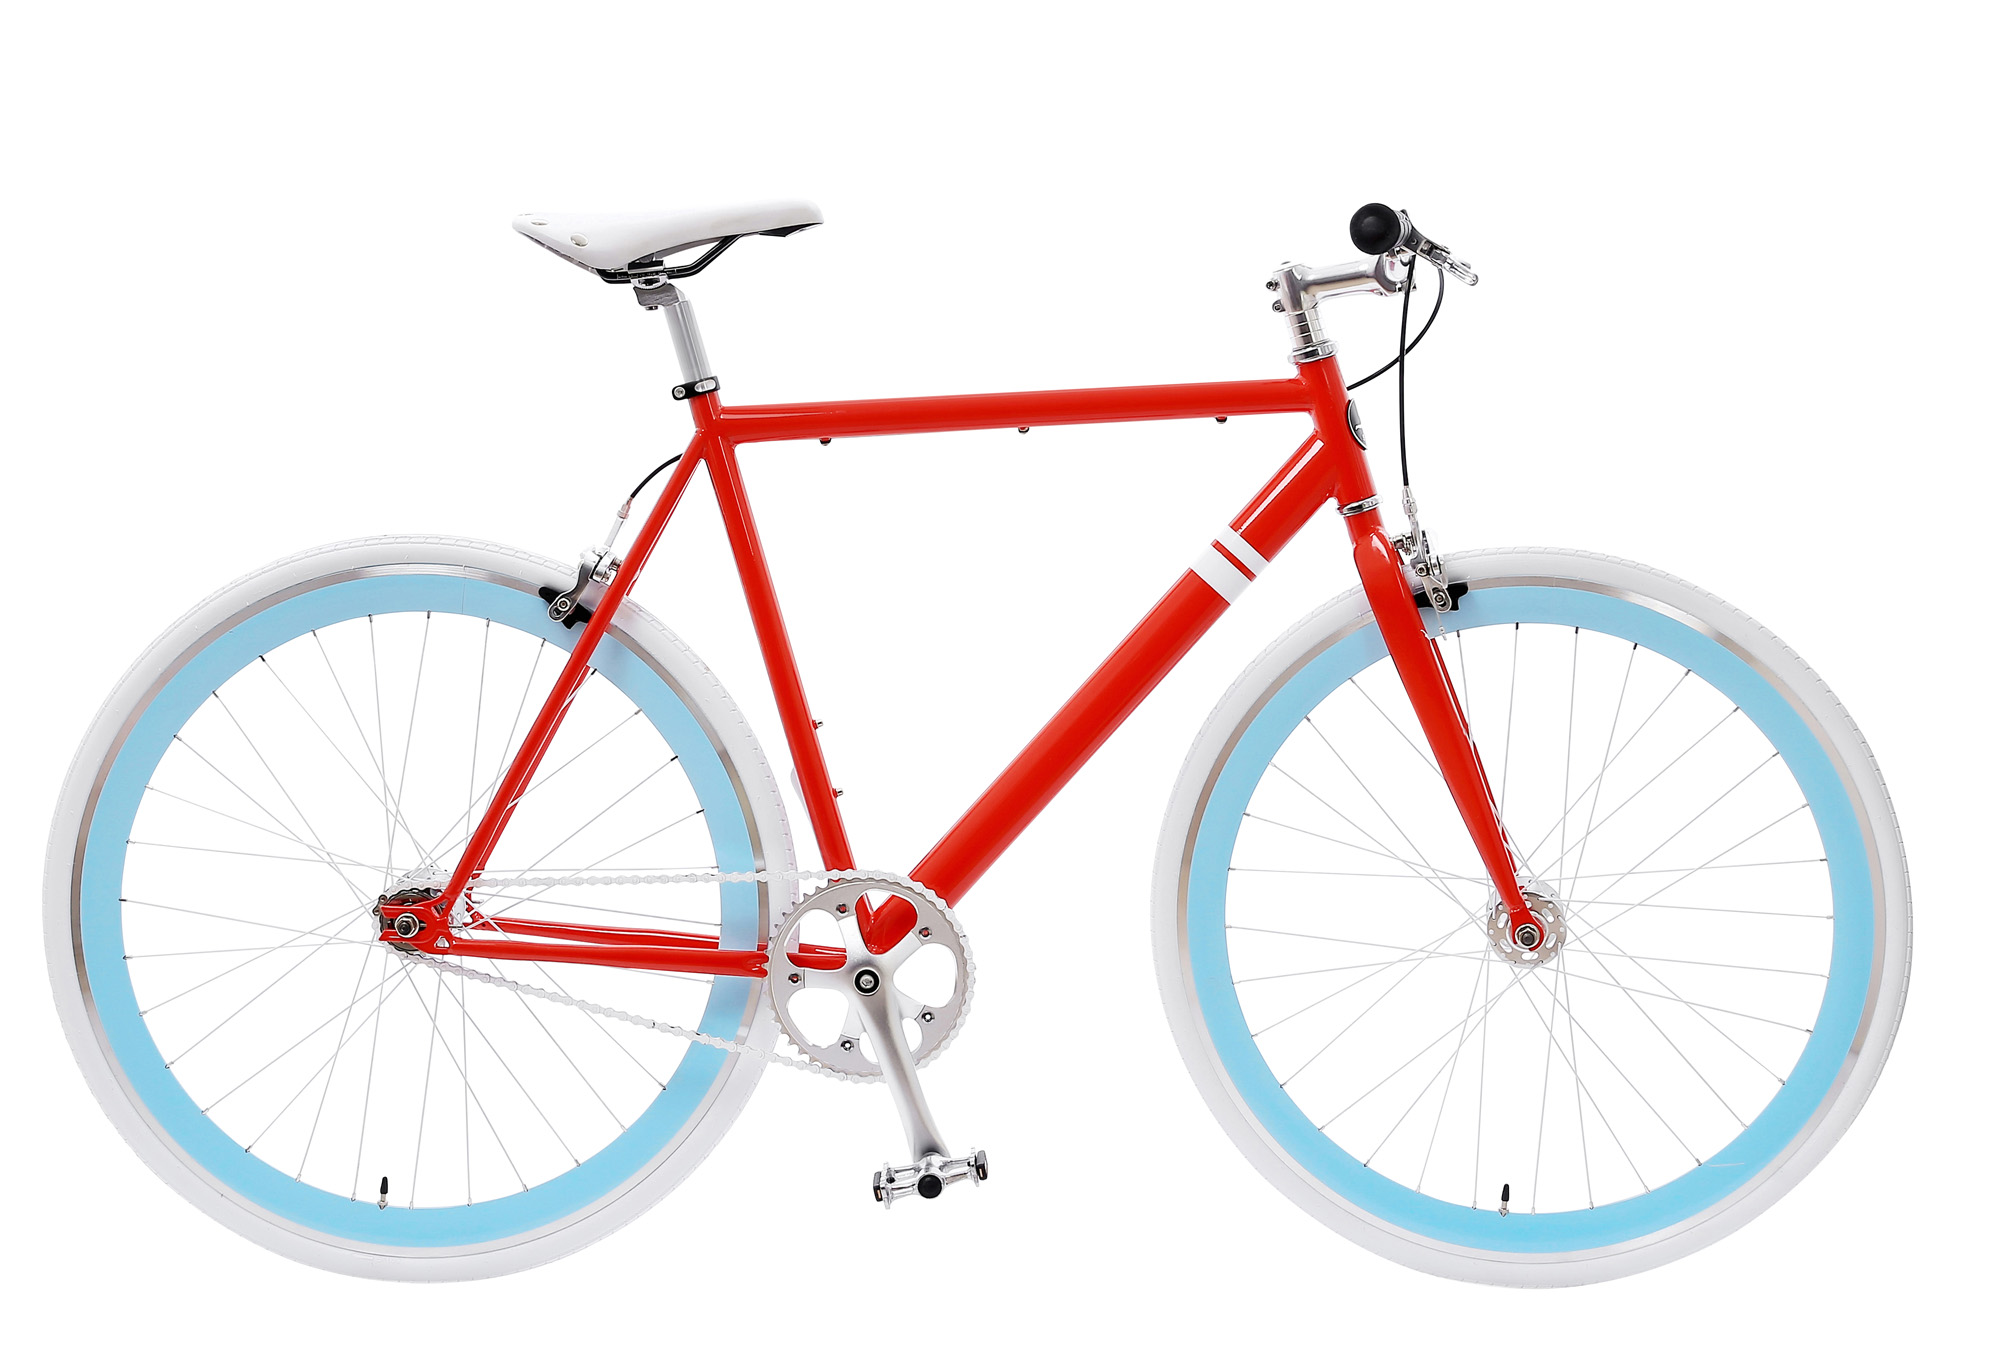 the OFW II Single Speed / Fixed Gear